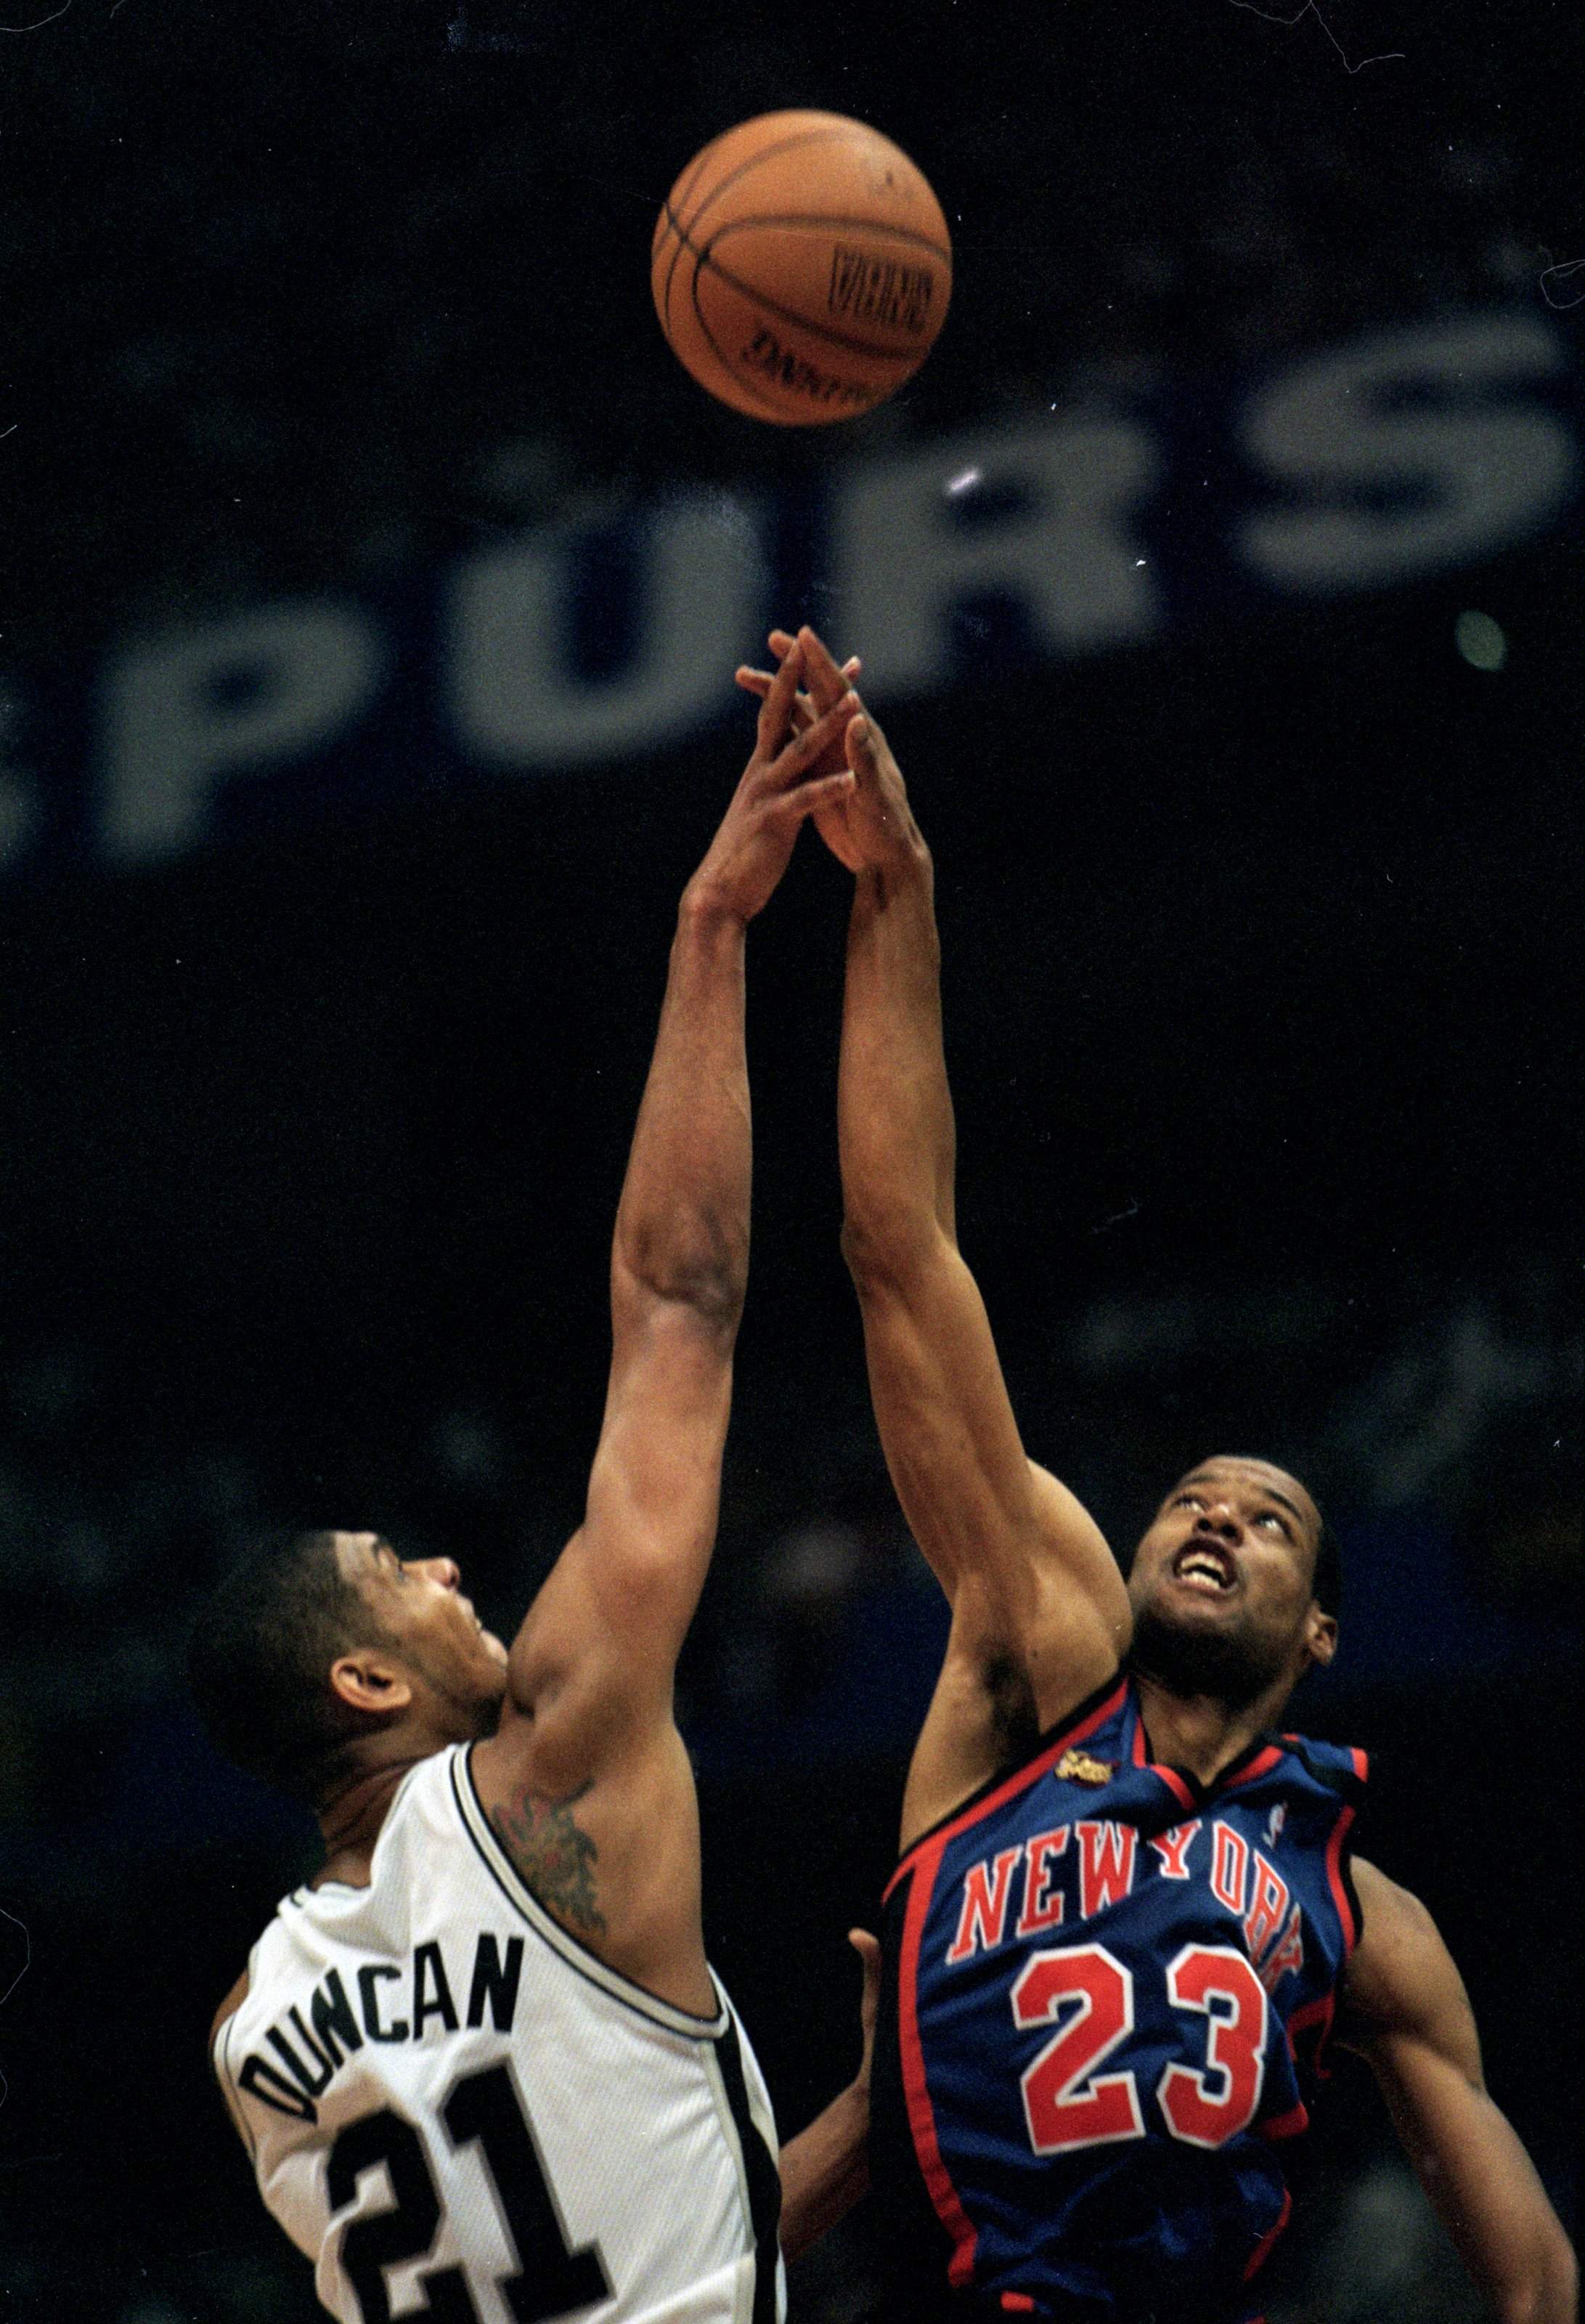 nba lockout Get the latest nba basketball news, scores, stats, standings, fantasy games, and more from espn.